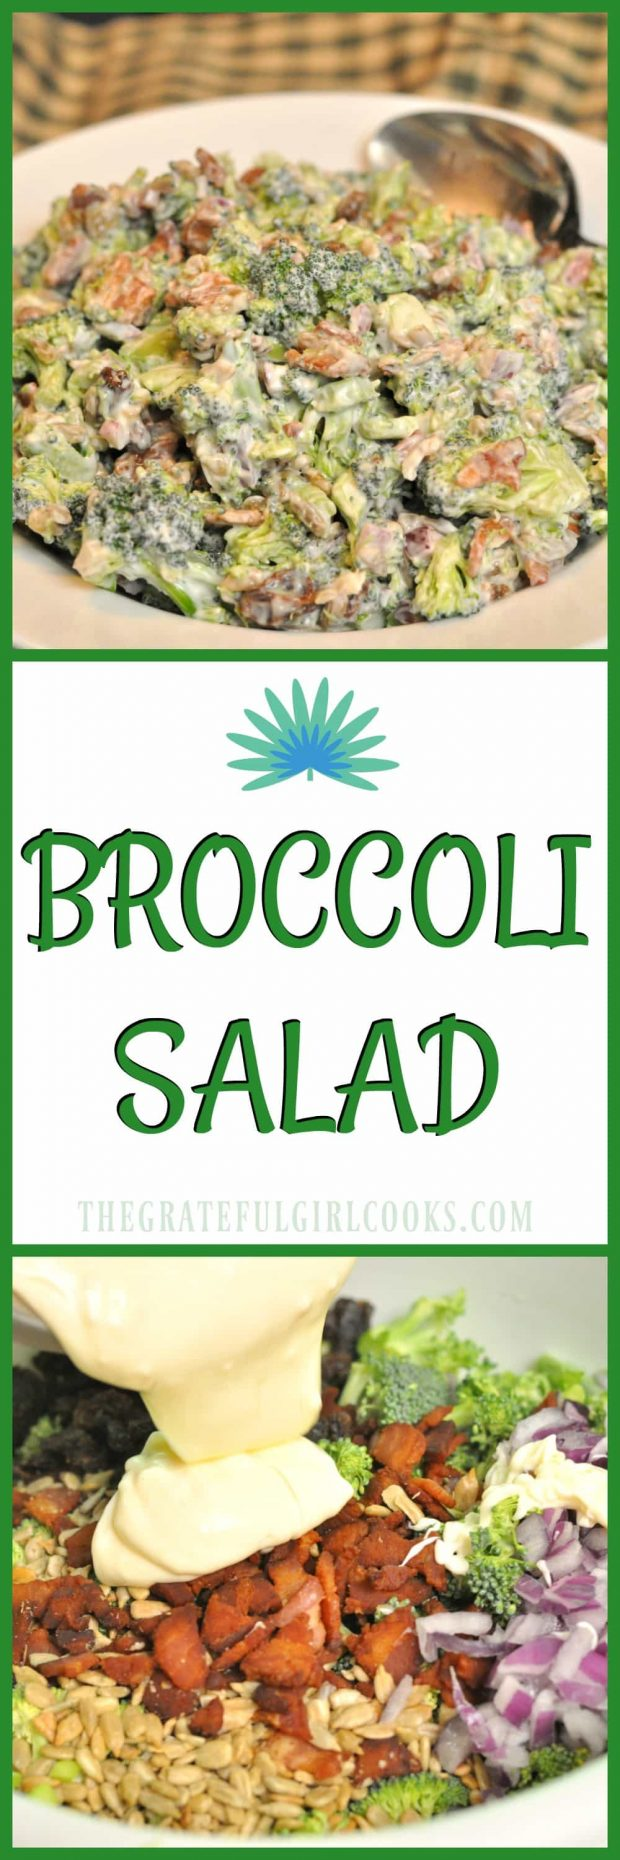 Broccoli Salad / The Grateful Girl Cooks! It's EASY to make this delicious, cold and crunchy broccoli salad side dish for family meals, BBQ's or potlucks!